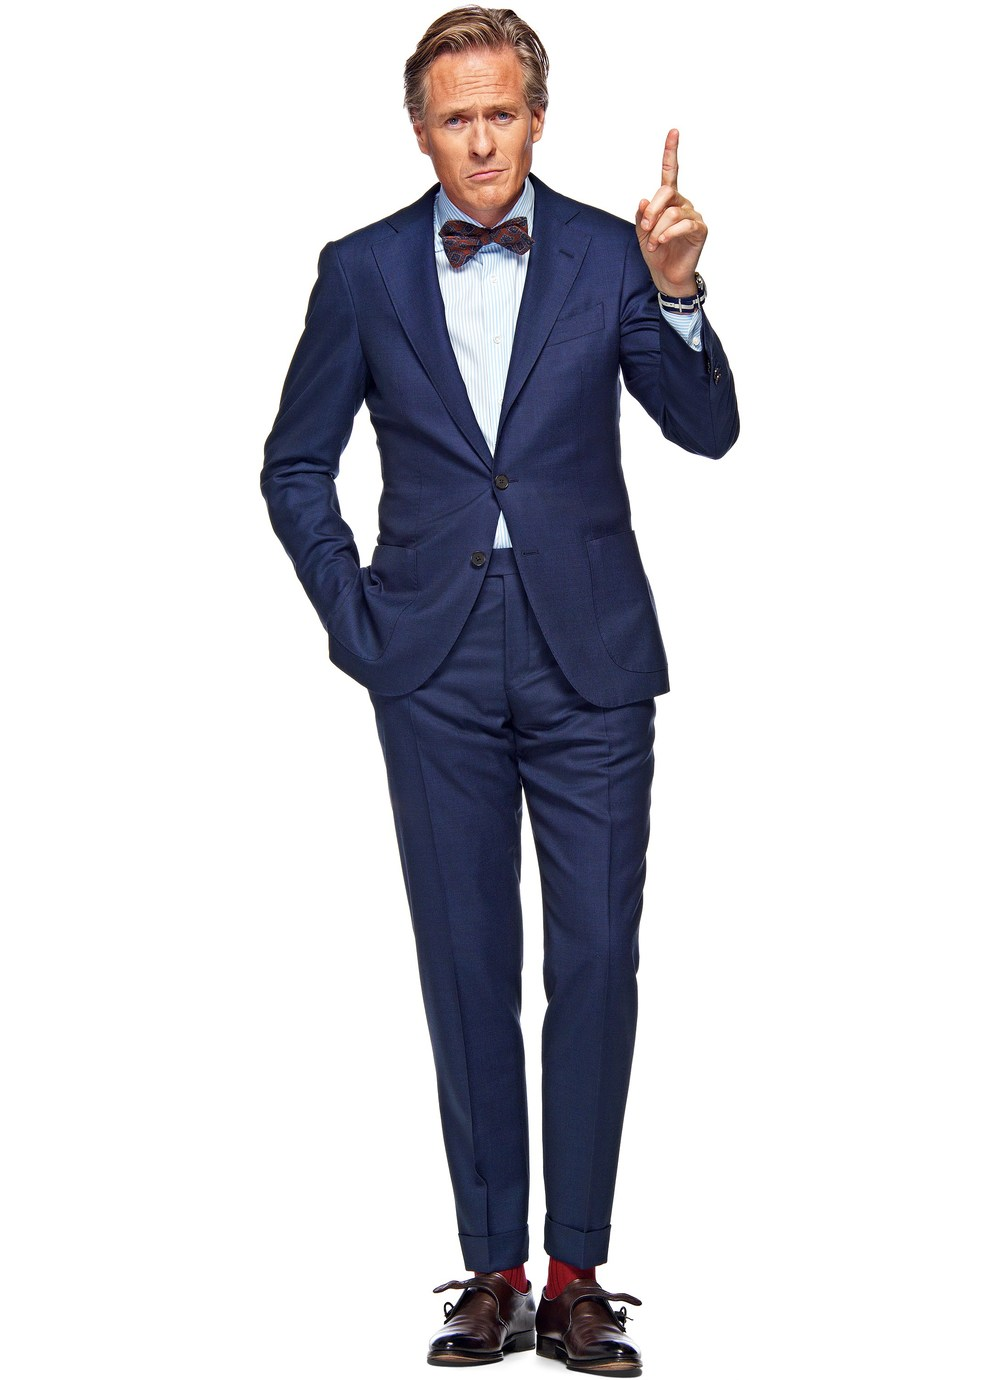 Suits_Blue_Plain_Jort_P3770_Suitsupply_Online_Store_1.jpg